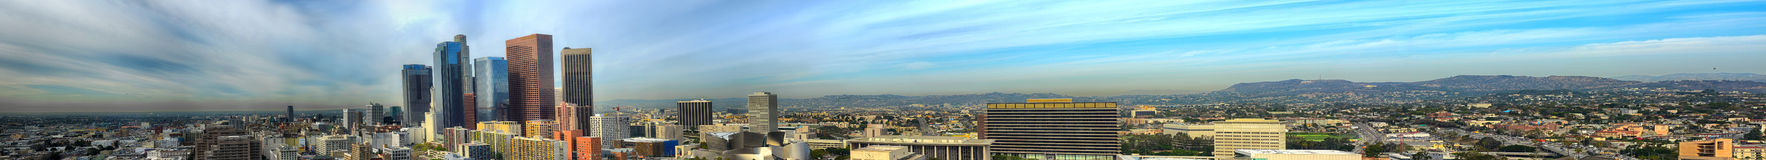 Free Complete Pano Of Los Angeles. Royalty Free Stock Images - 41133259